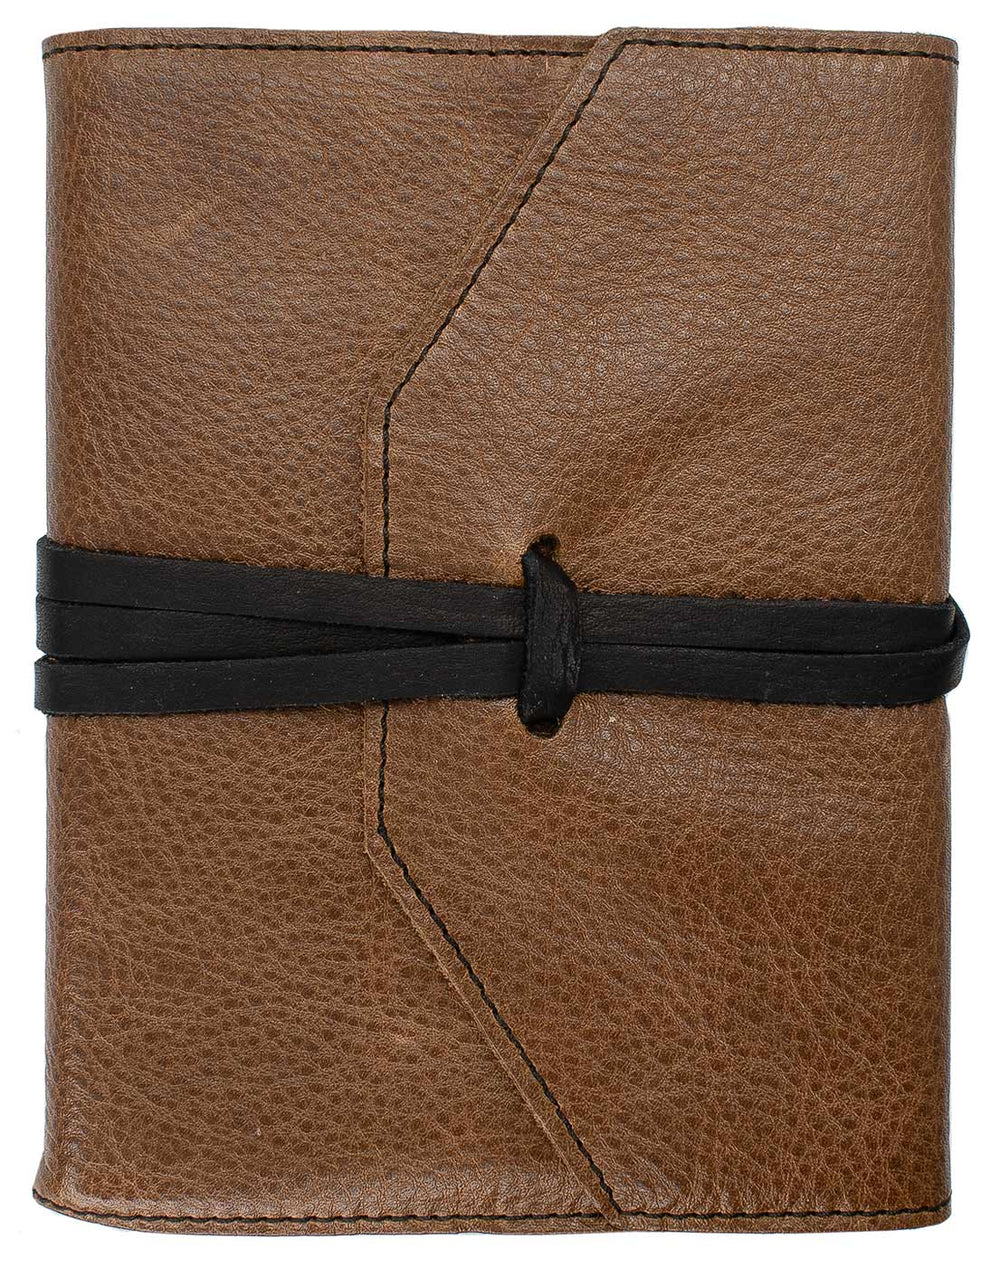 Manufactus Milano Journal- Vintage Brown Leather